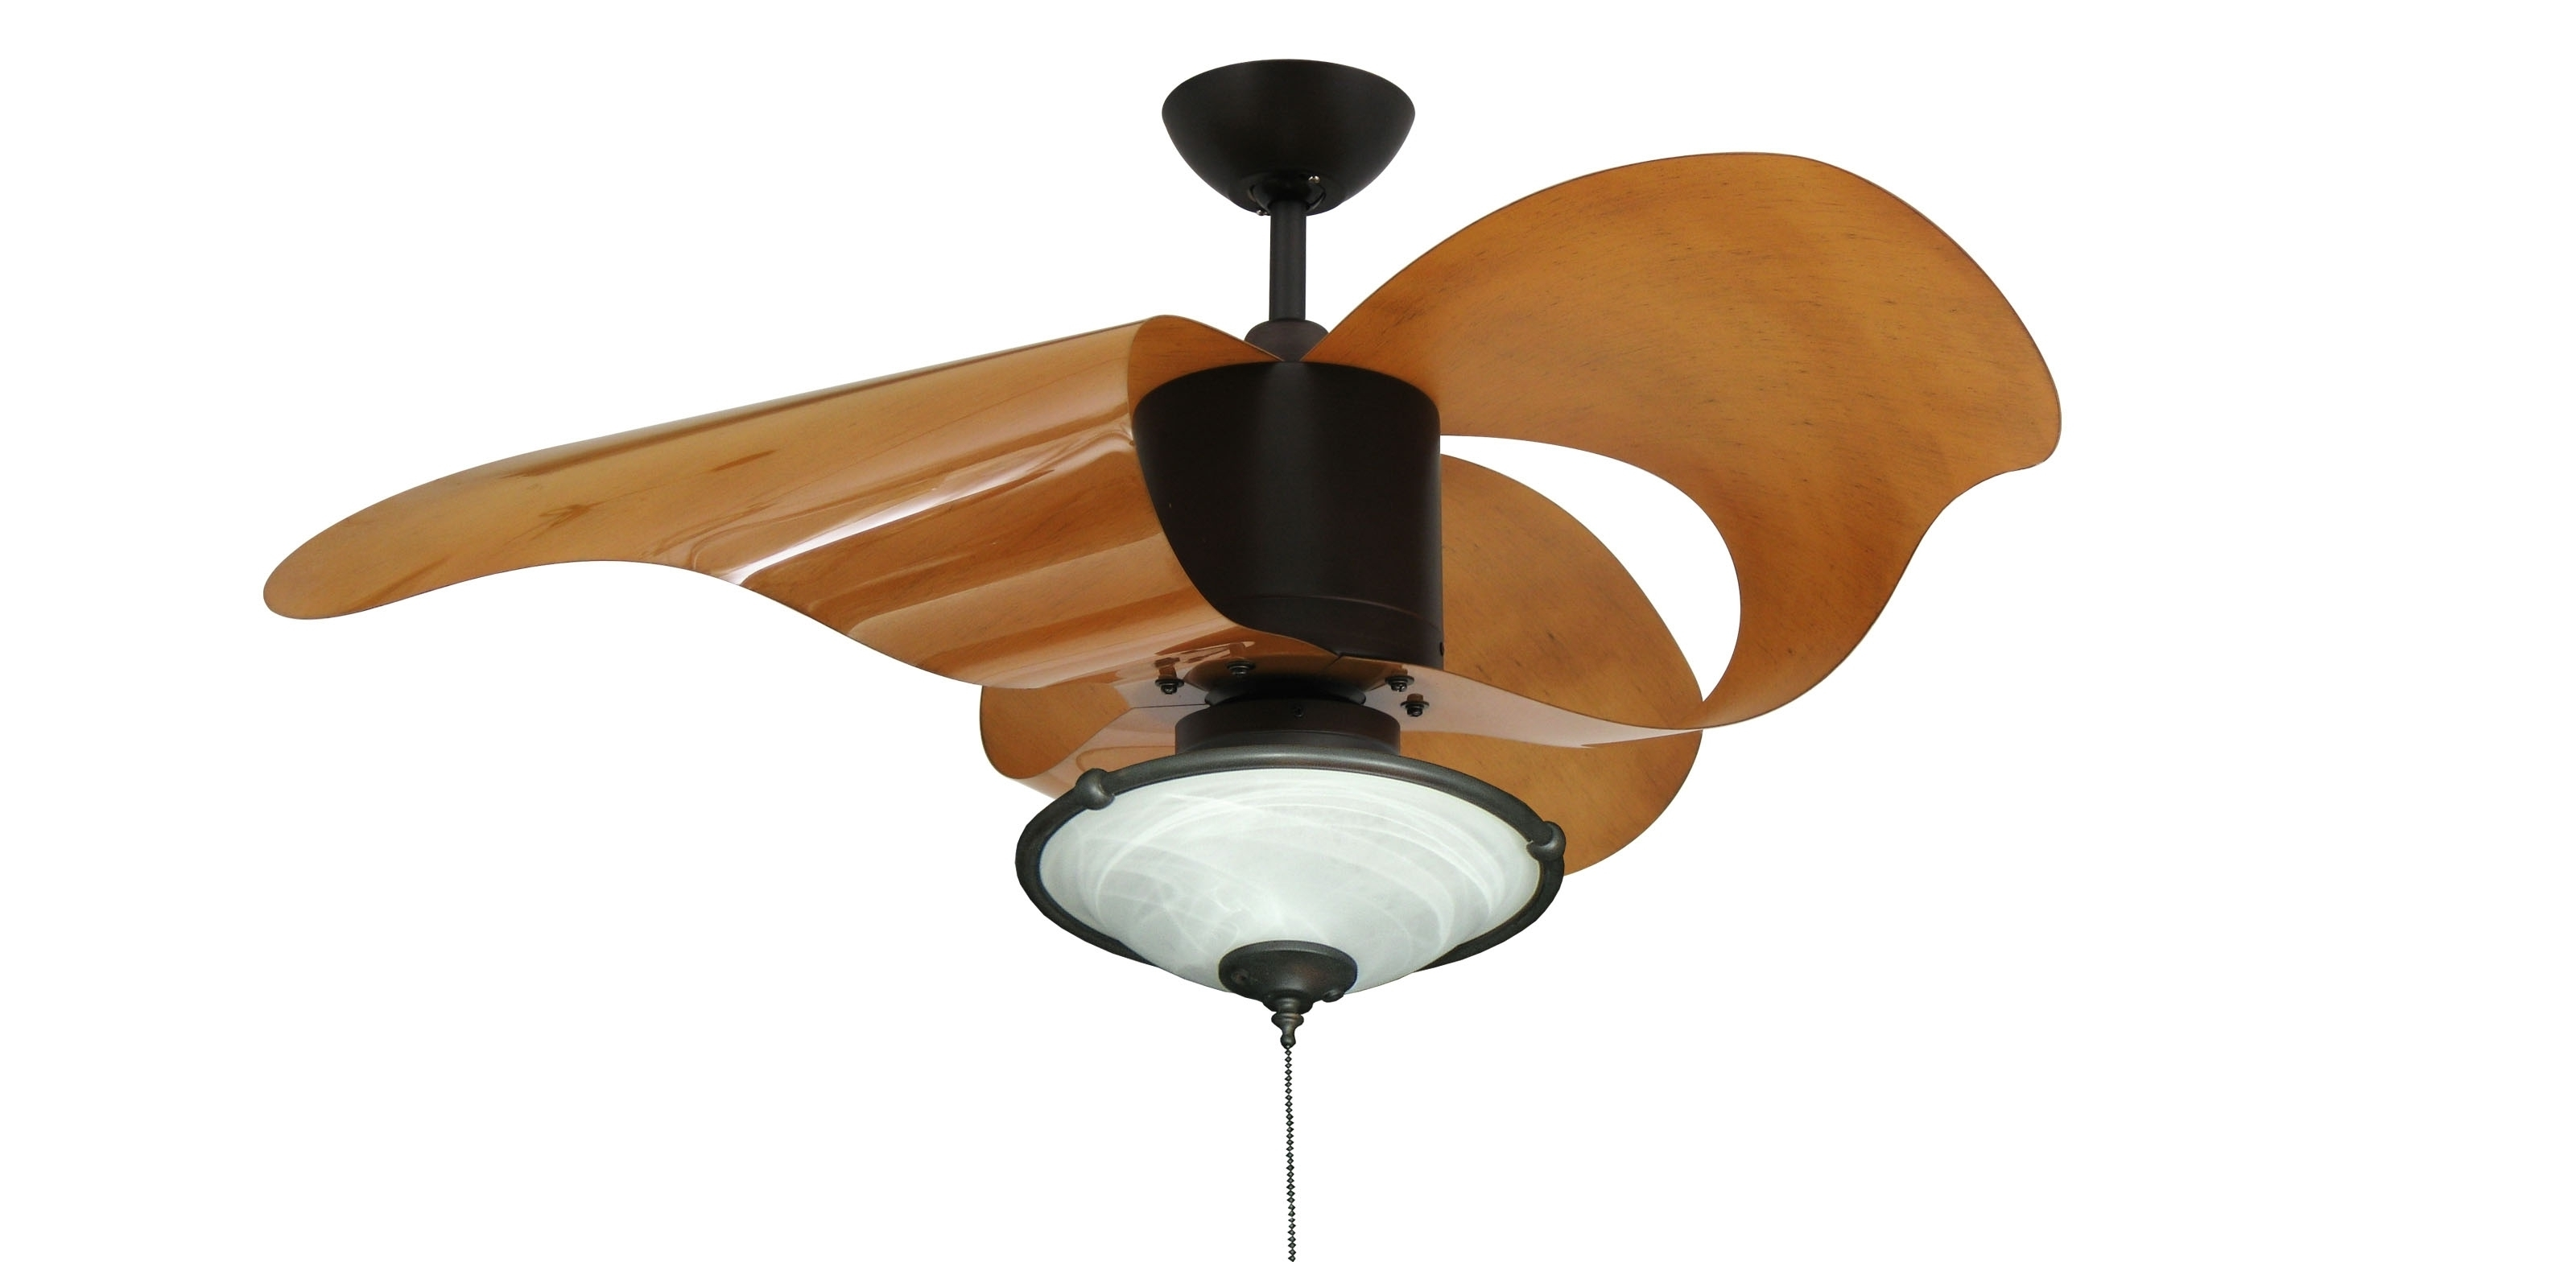 Contemporary Outdoor Ceiling Fans With Regard To Current Modern Outdoor Ceiling Fans 52 Antique White Large Room, Modern (View 6 of 20)